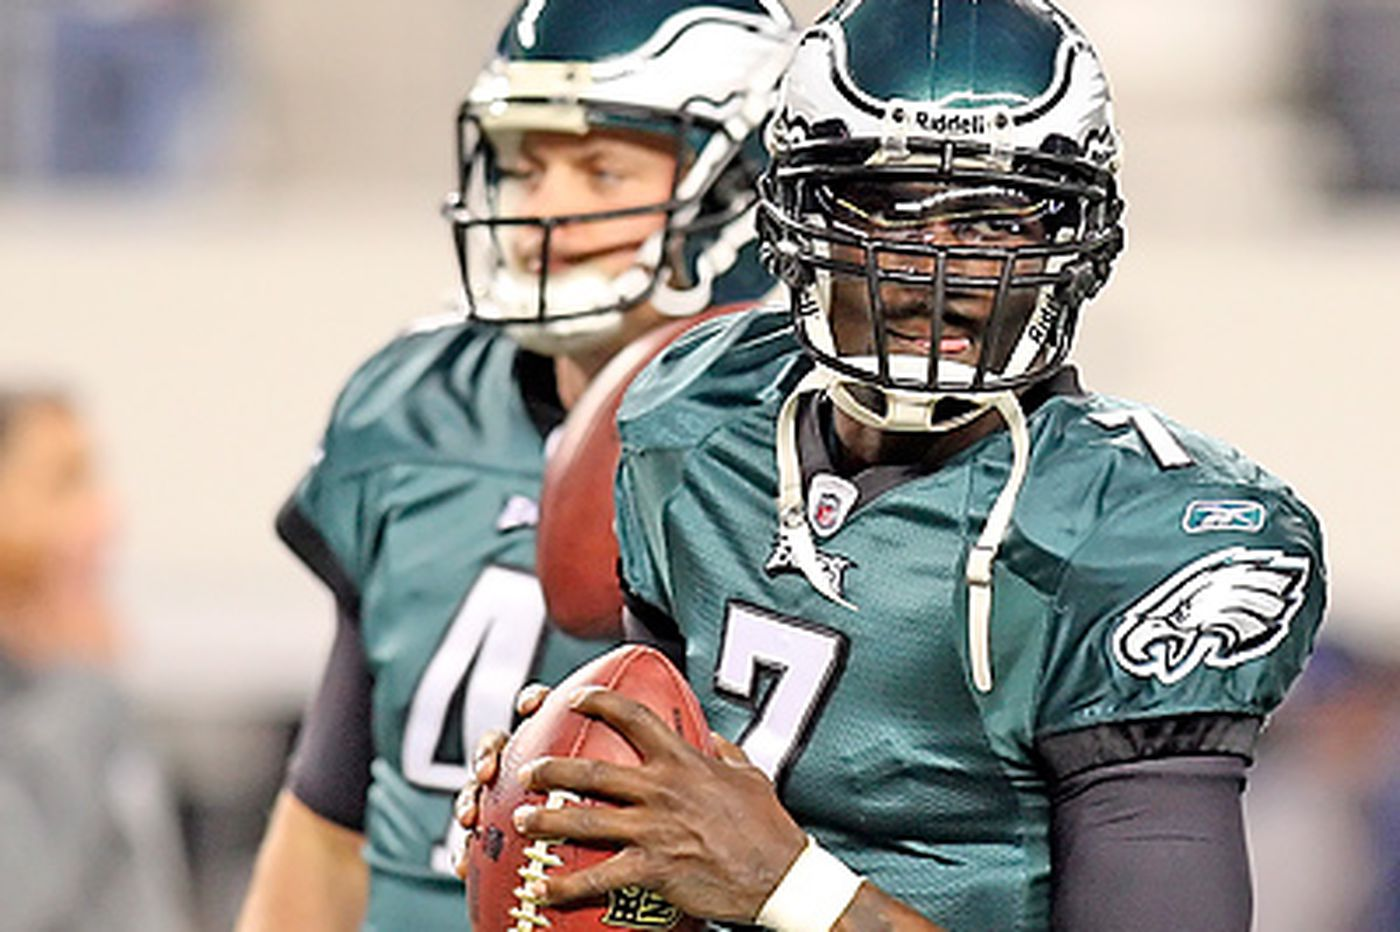 Losses to Cowboys last season have Eagles rarin' to go